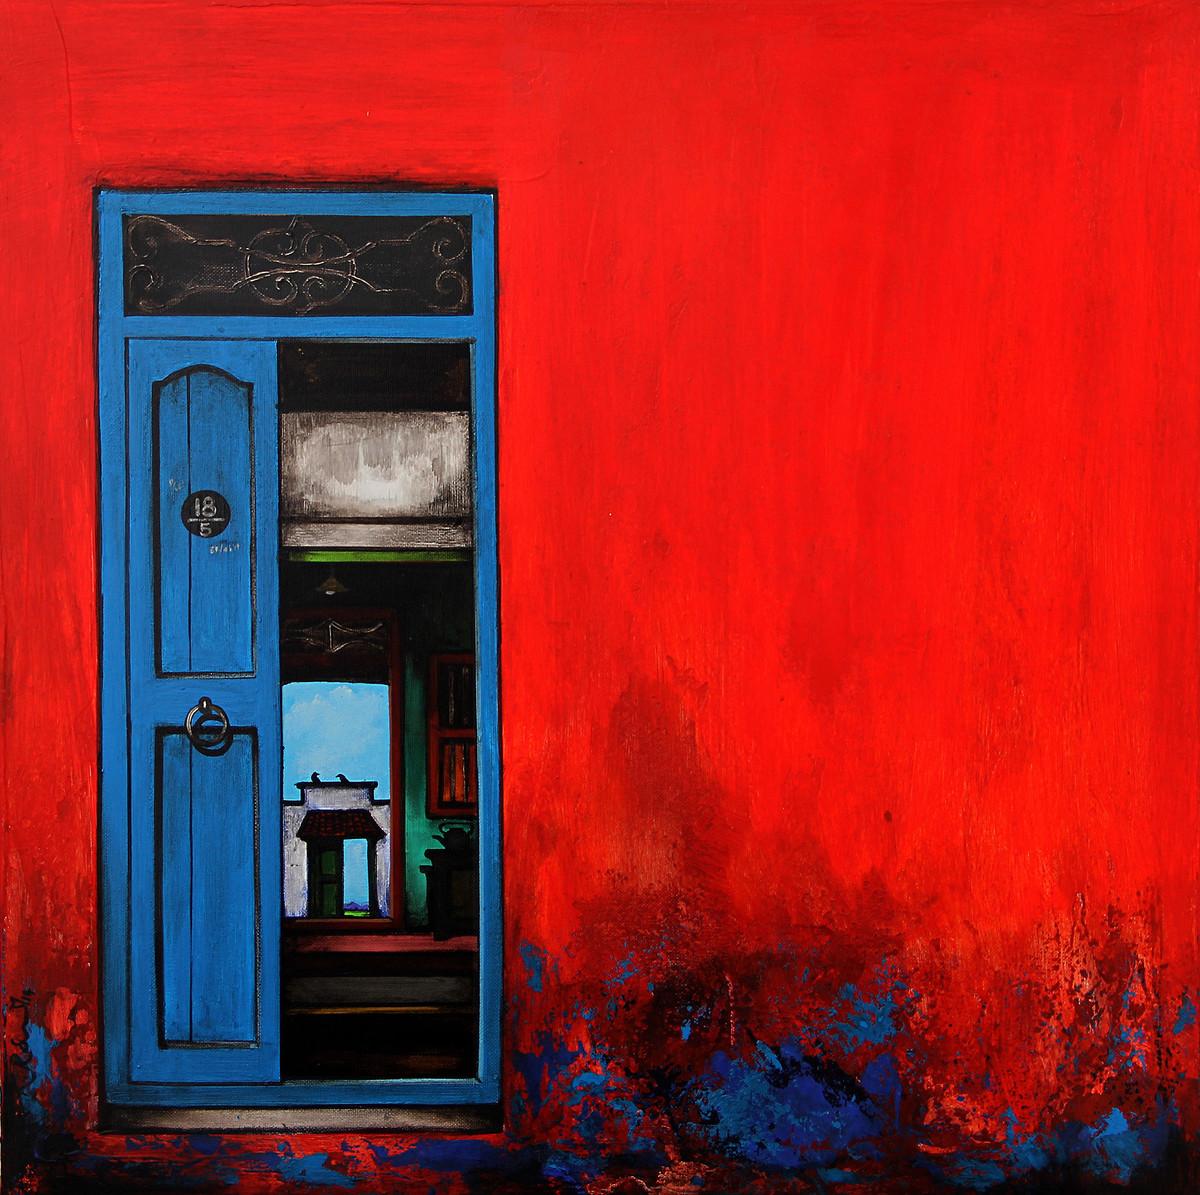 Door 20 by K R Santhanakrishnan Geometrical Painting Acrylic on Canvas Red color  sc 1 st  Mojarto & Buy K R Santhanakrishnan Paintings Online - View Prices and Size ...